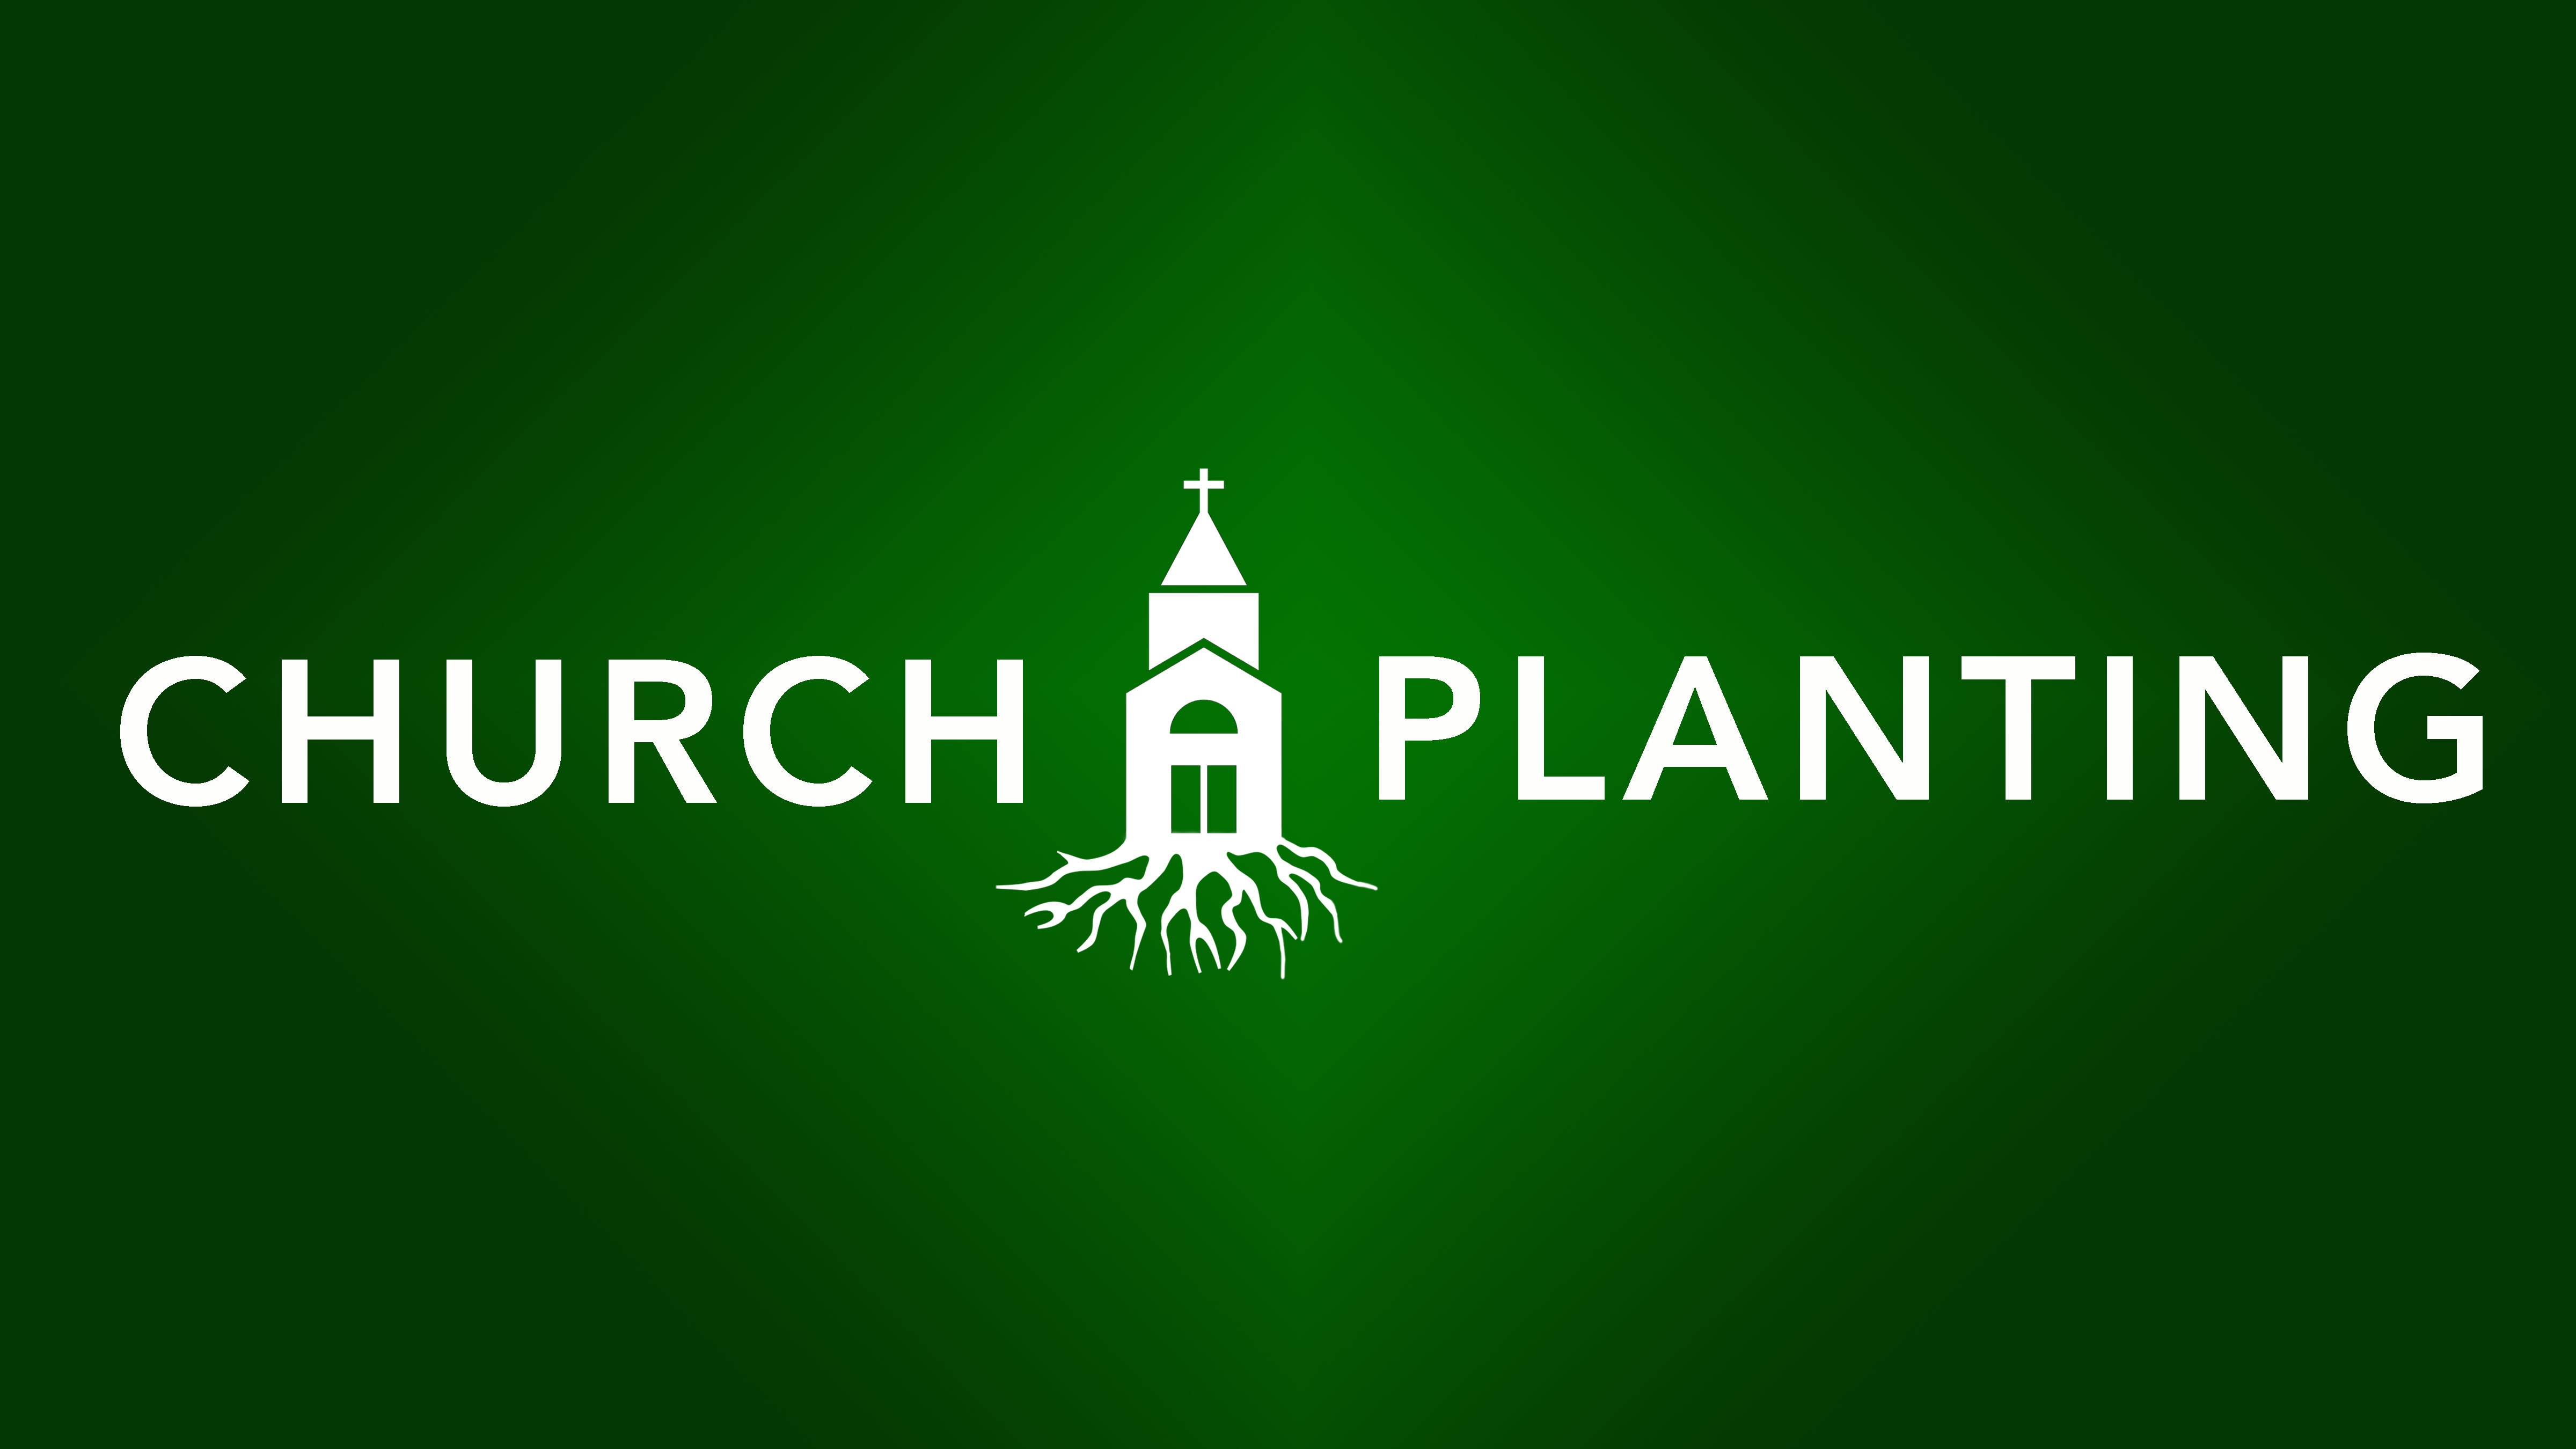 03-31-19 | Church Planting | Dima Lazuta and Mark Anderson